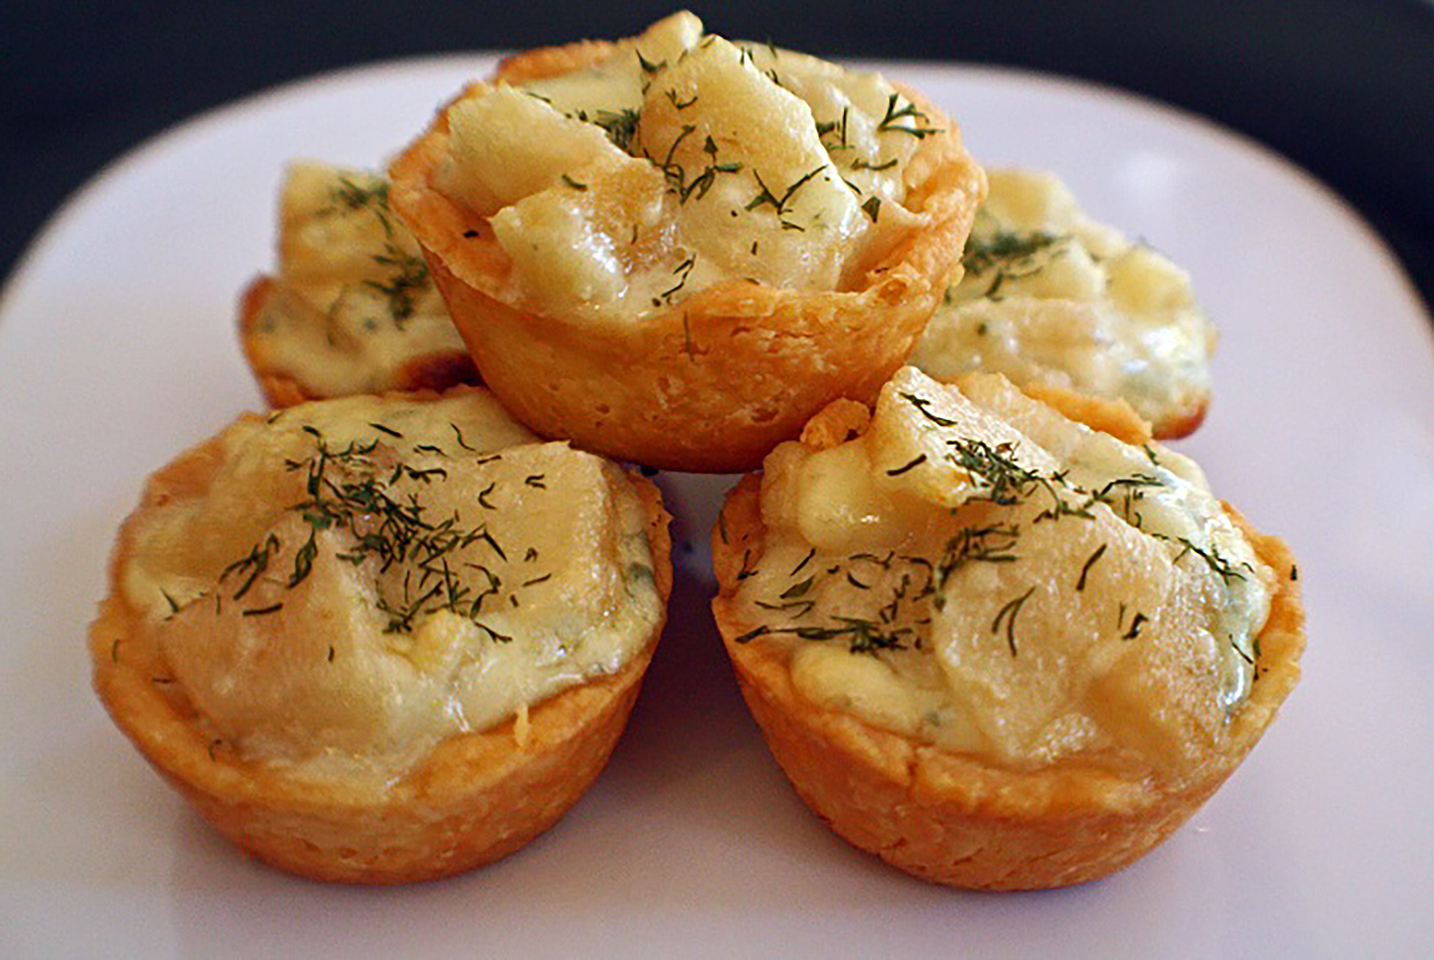 """You'll only need five ingredients for this easy finger food recipe, but guests will never know due to these tartlets' elegant appearance. """"Served them at a party and everyone gobbled them up and kept exclaiming how delicious they were,"""" says Allrecipes user kcbee."""